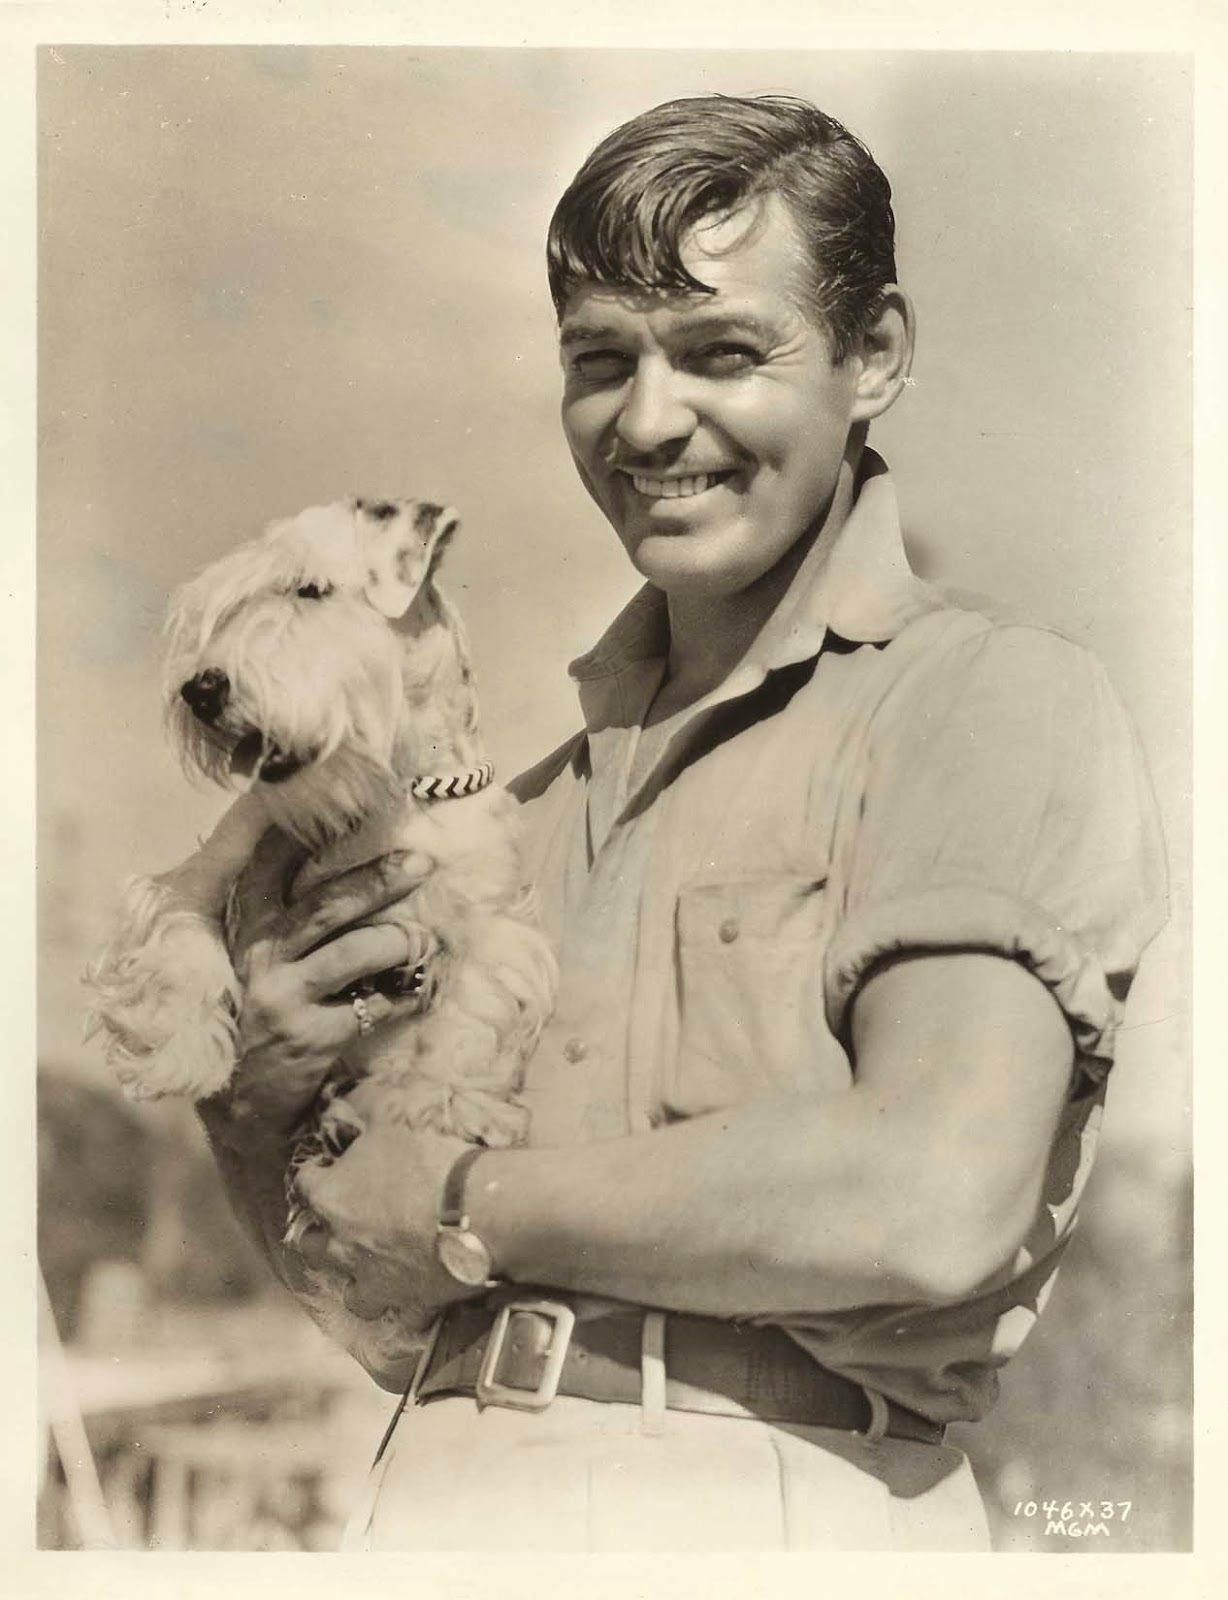 Clark Gable and a puppy